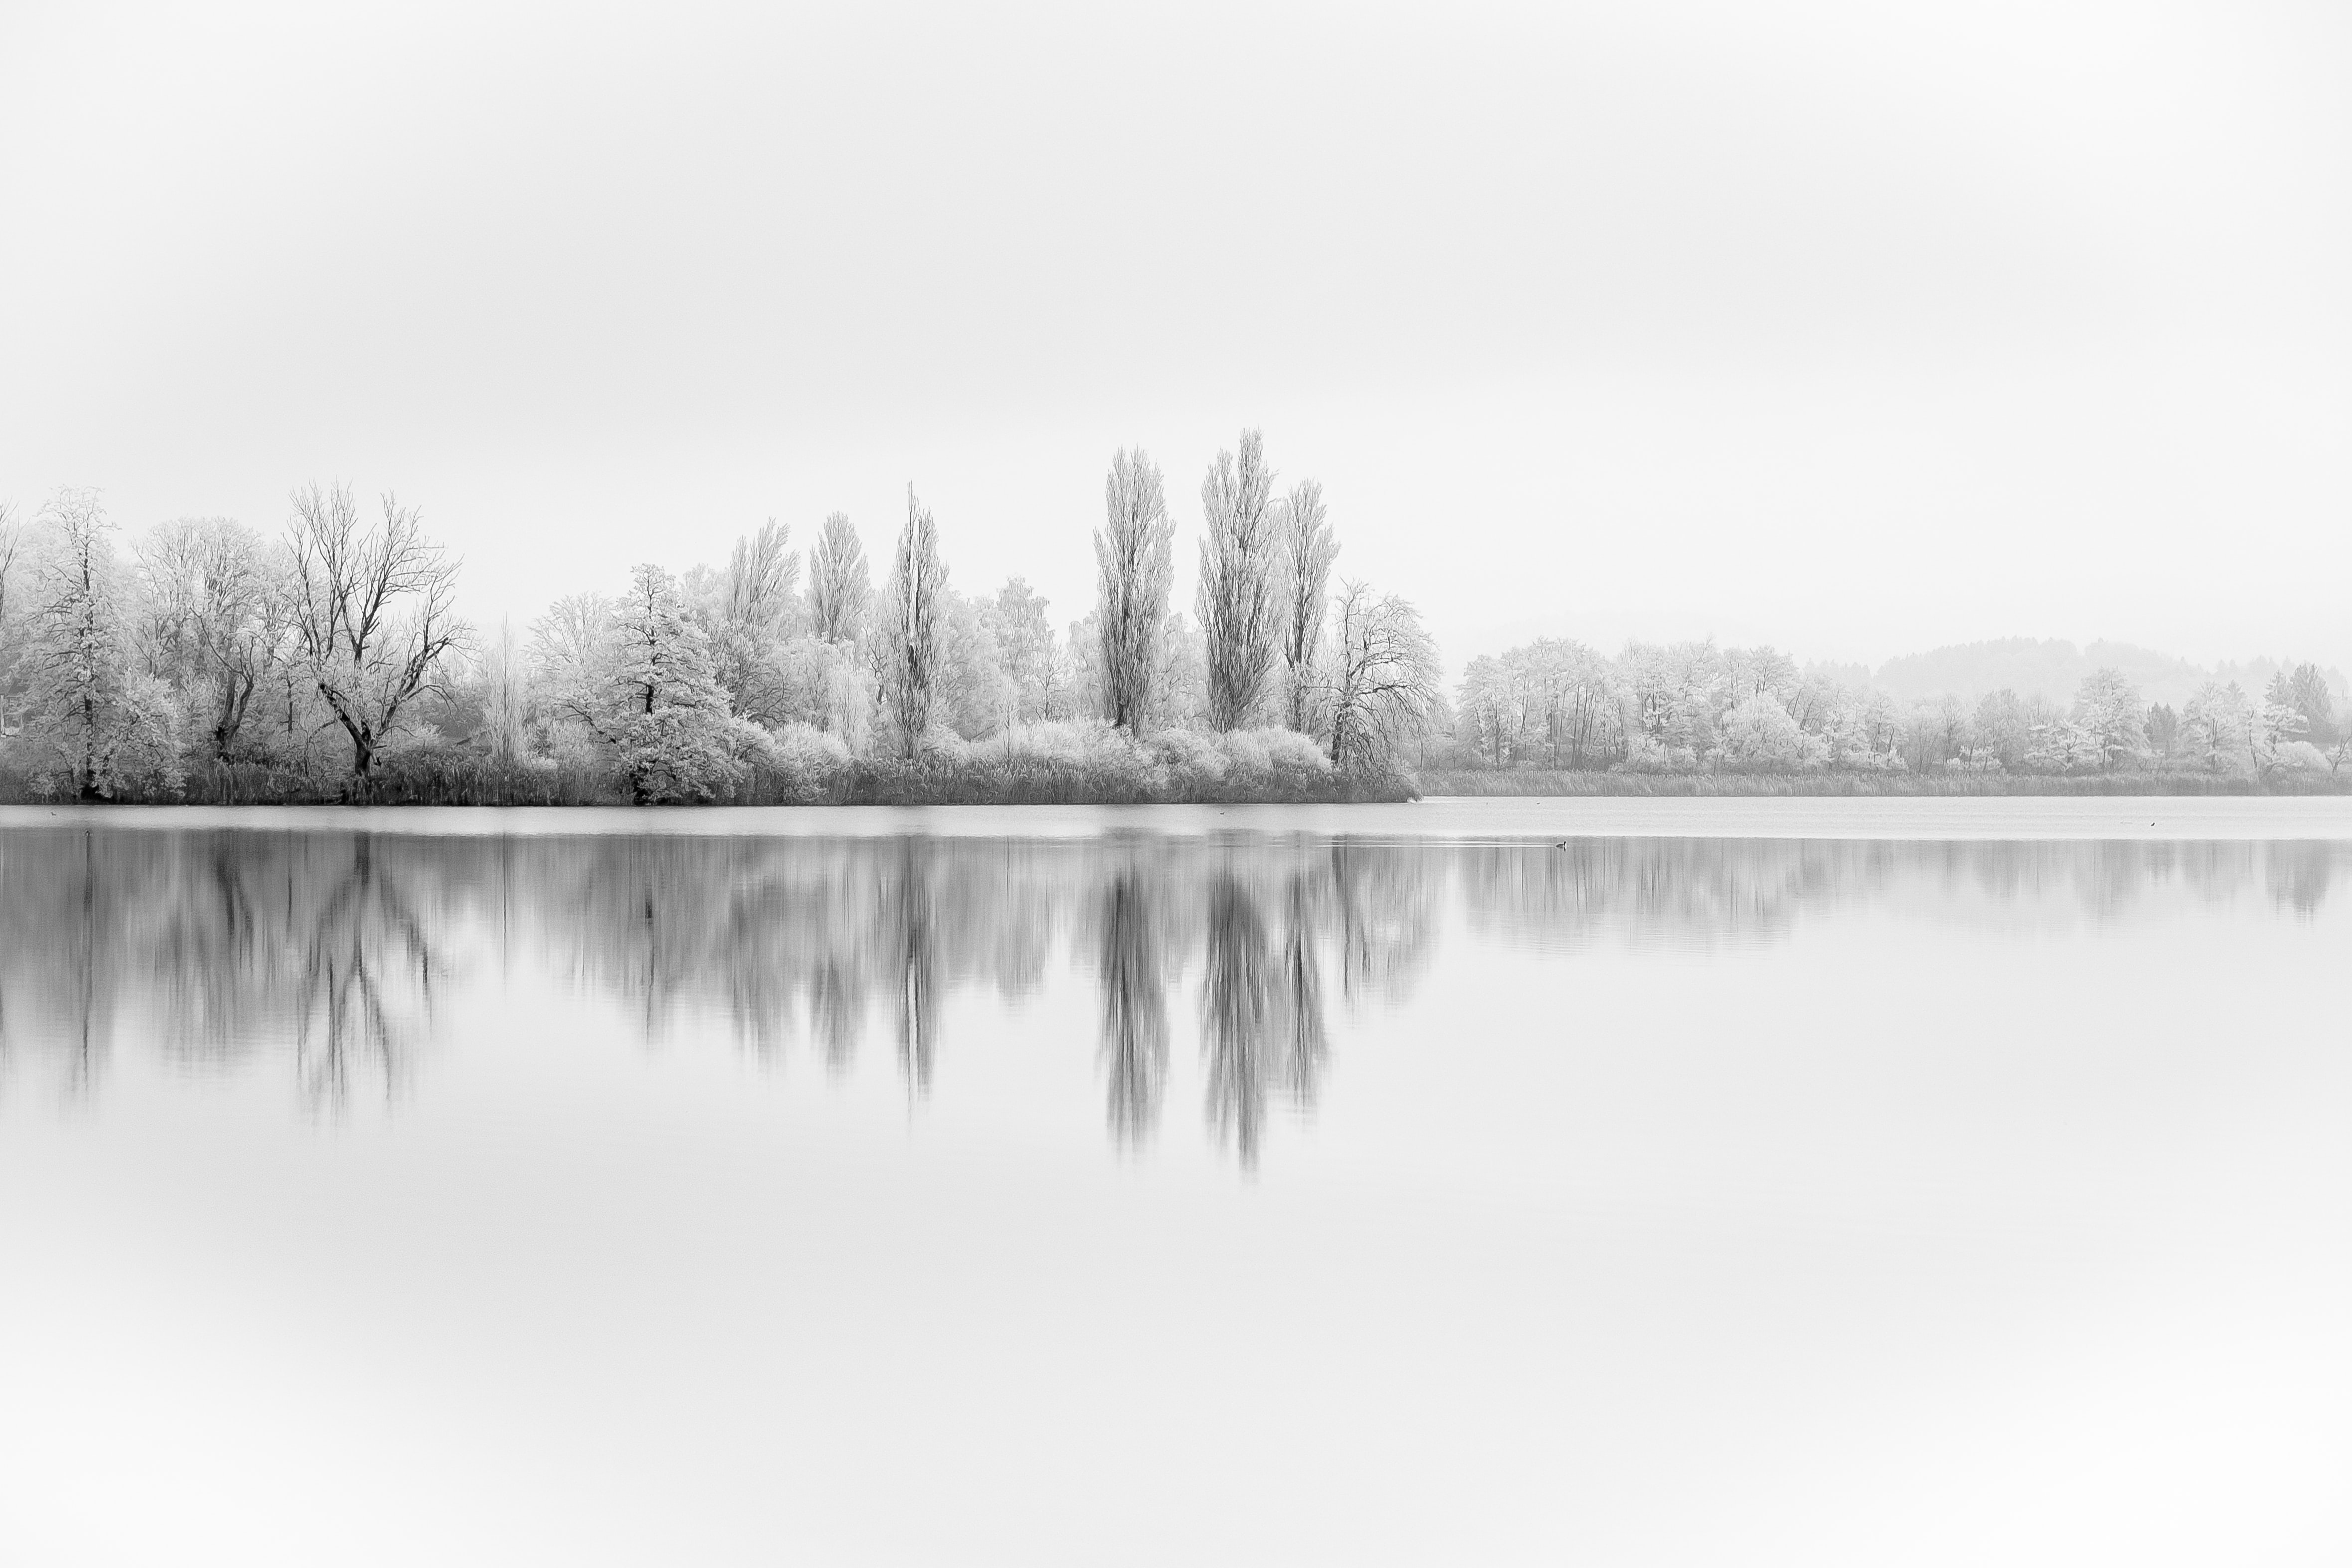 forest covered with snow reflected on body of water grayscale photo